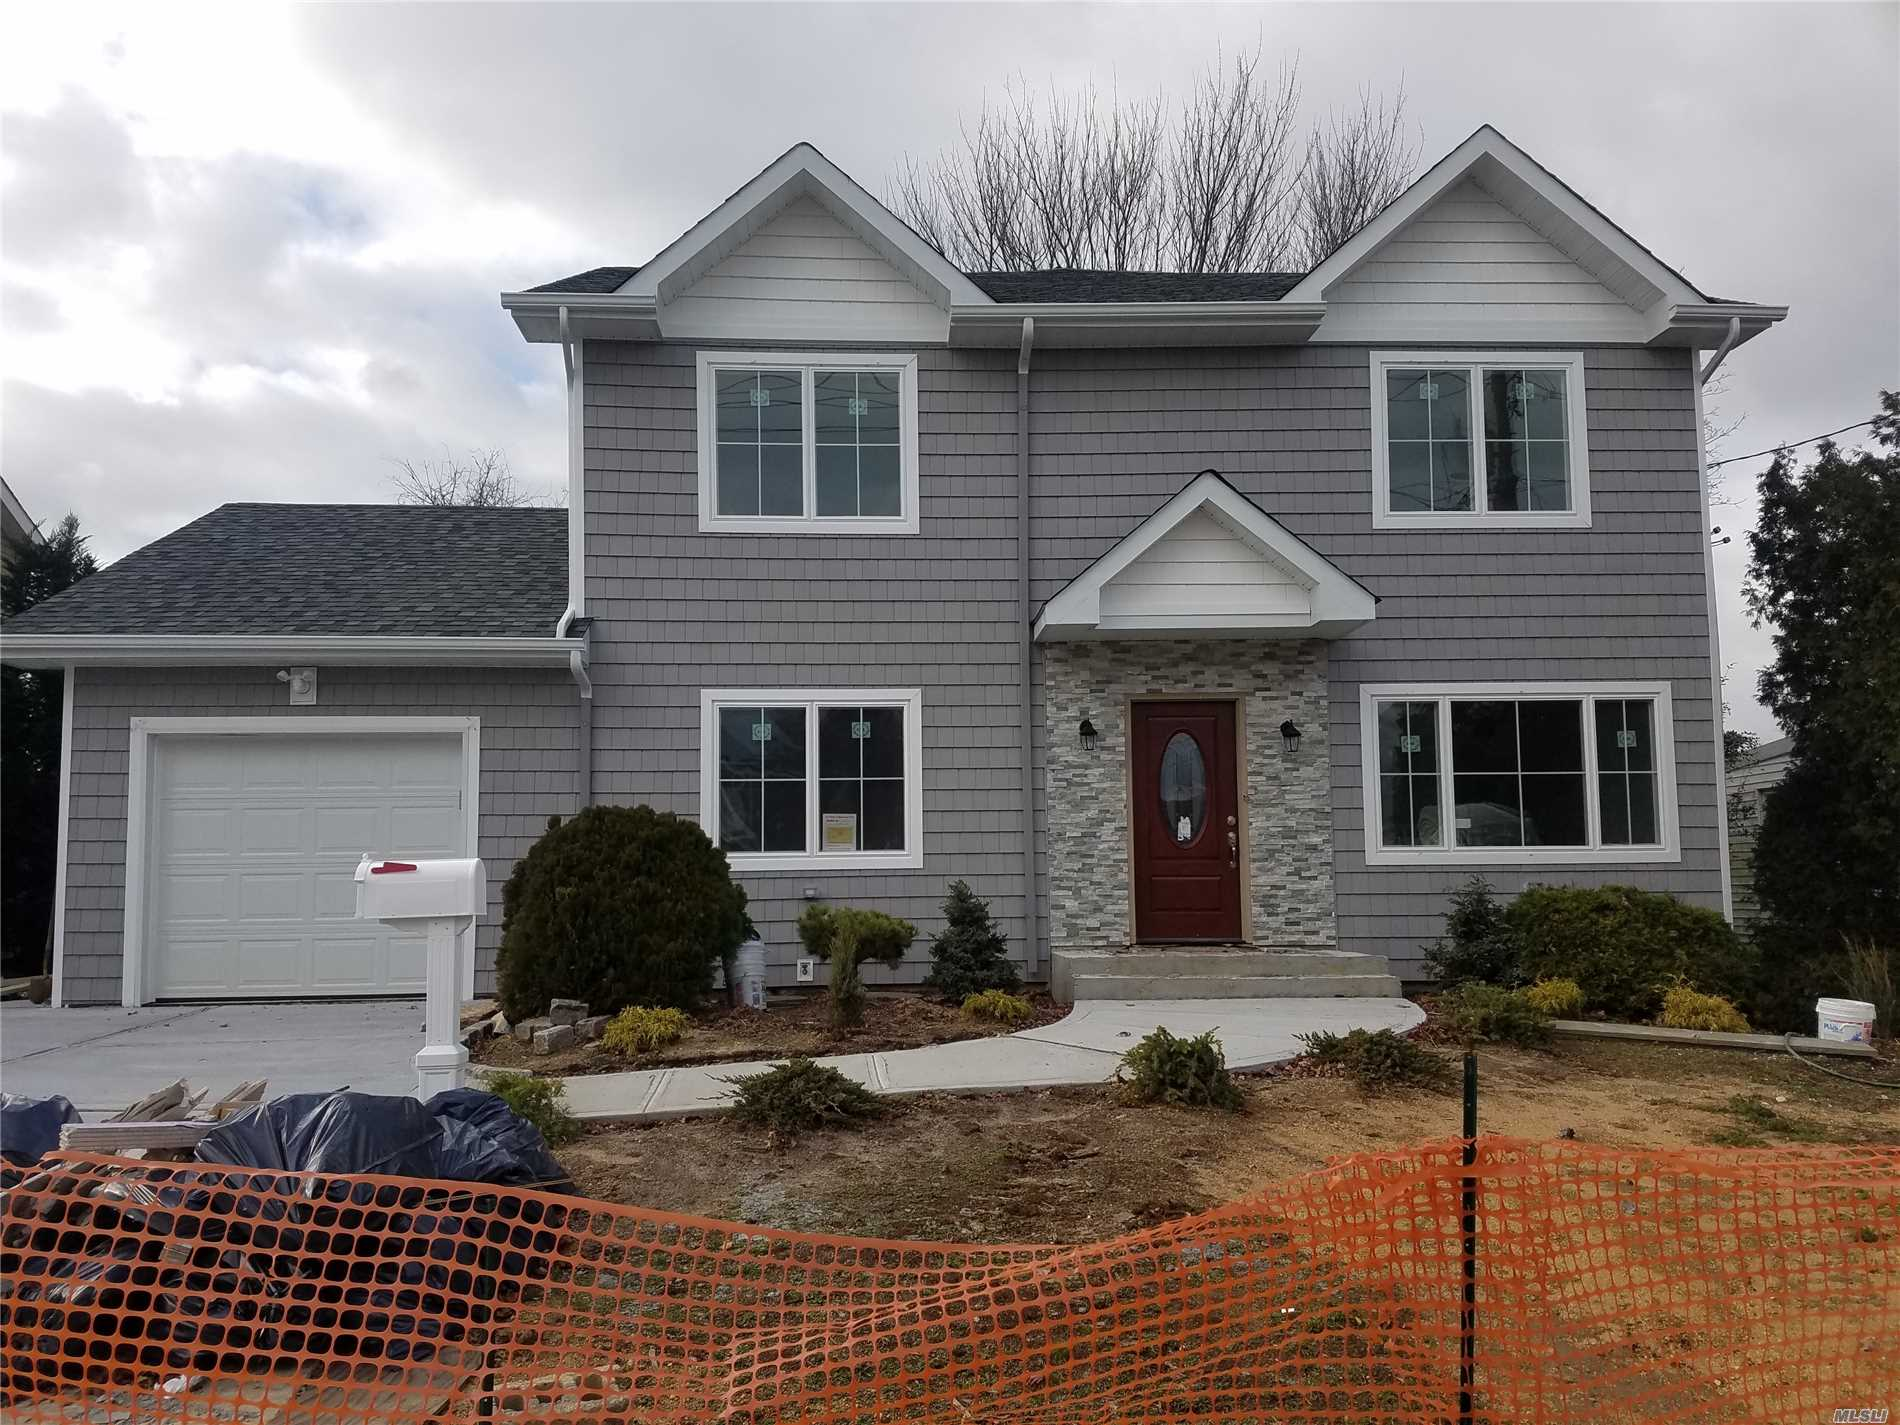 New Construction. 4Br/3Ba. Open Floor Plan. Finished By End Of January. Taxes Are Being Grieved. Buyer Can Pick Finishings!! Builder Has Other Properties For Sale!